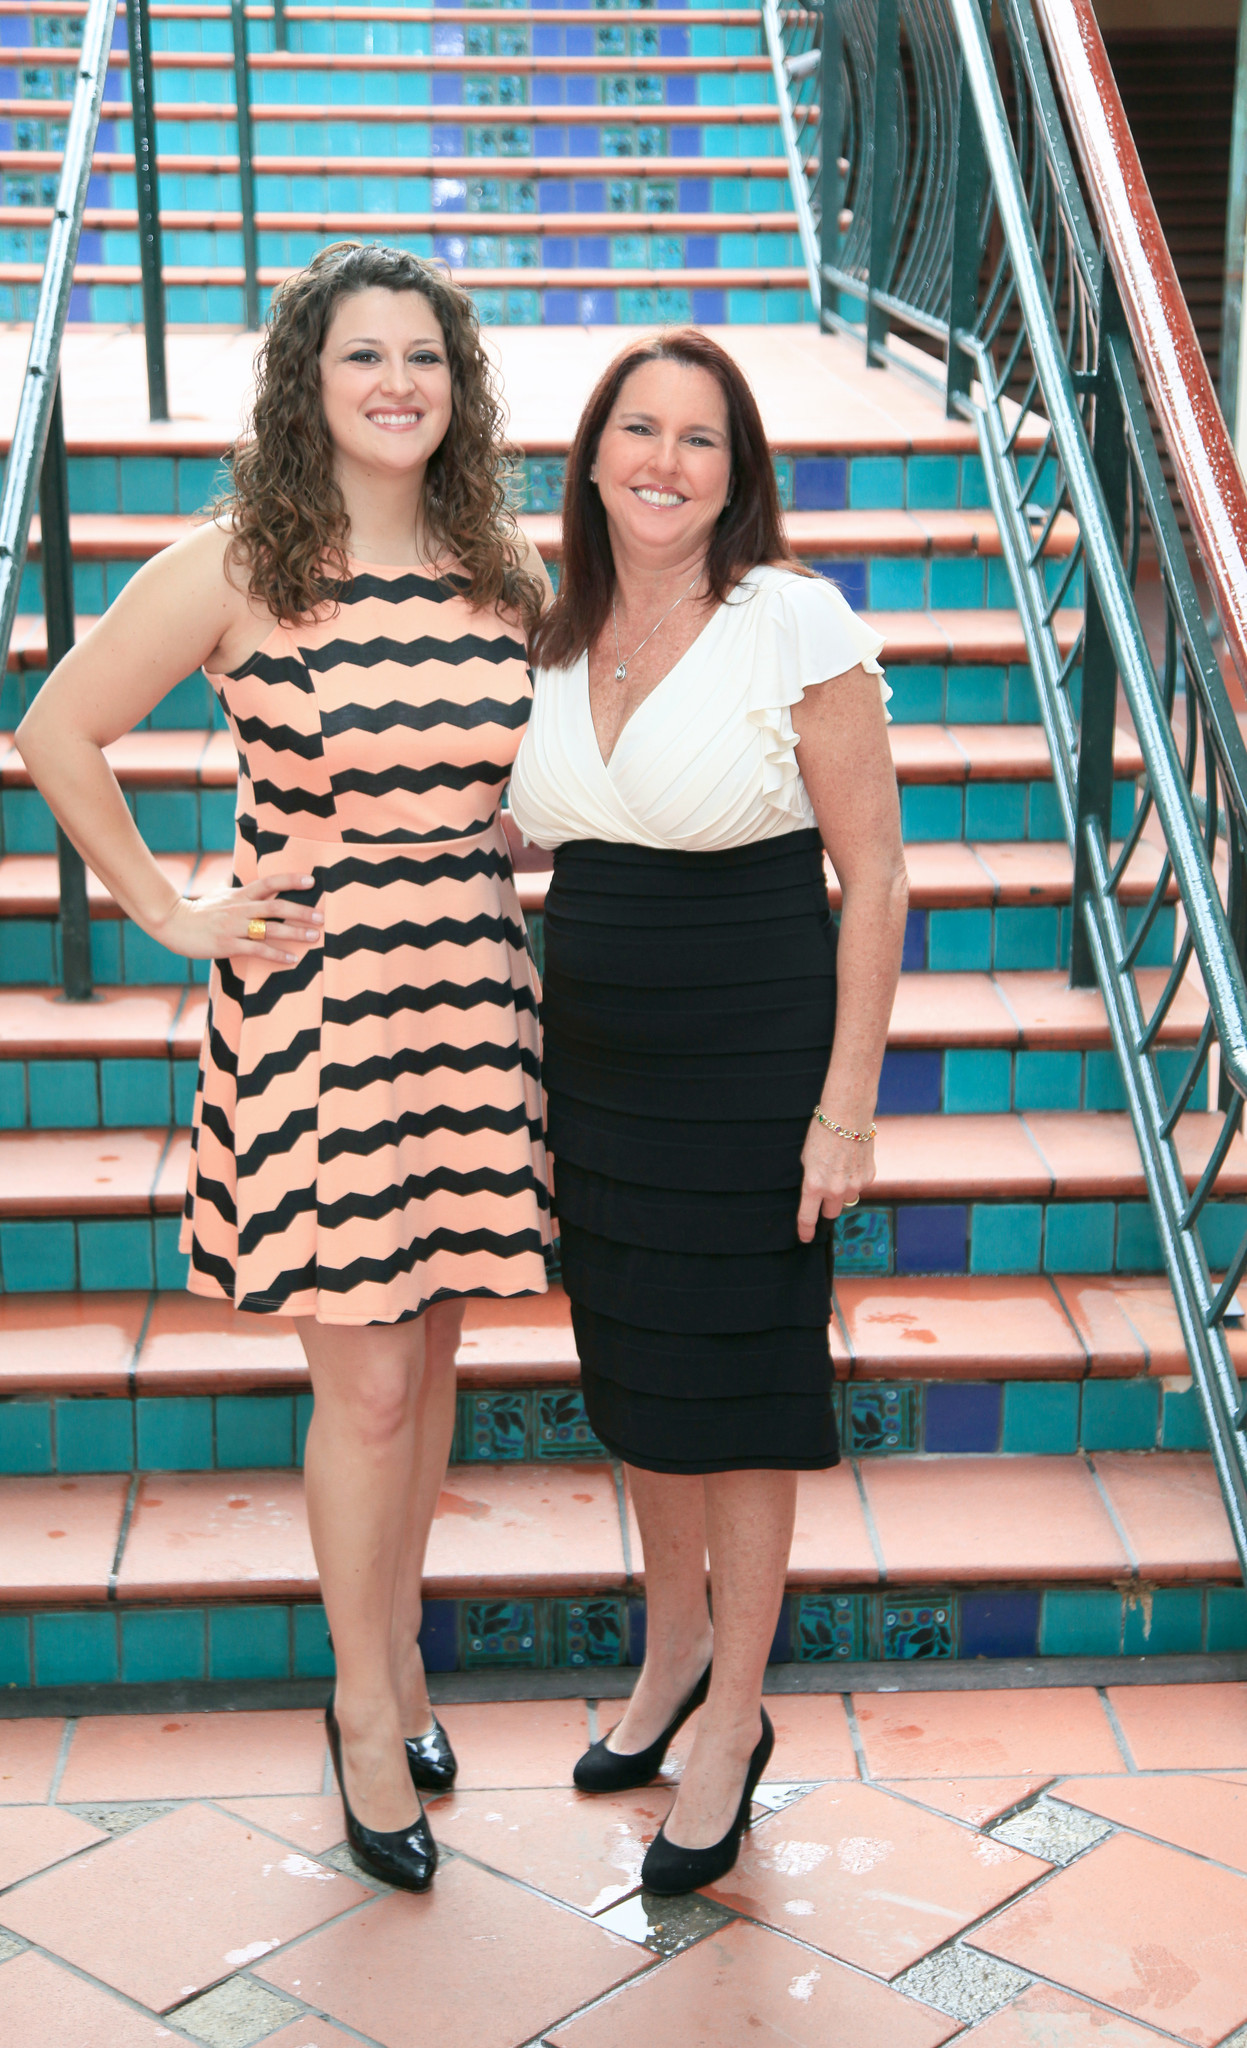 Society Scene photos - Kathleen Scheuermann, left, and Elisa Stone are ready to see stars at Covenant House Florida